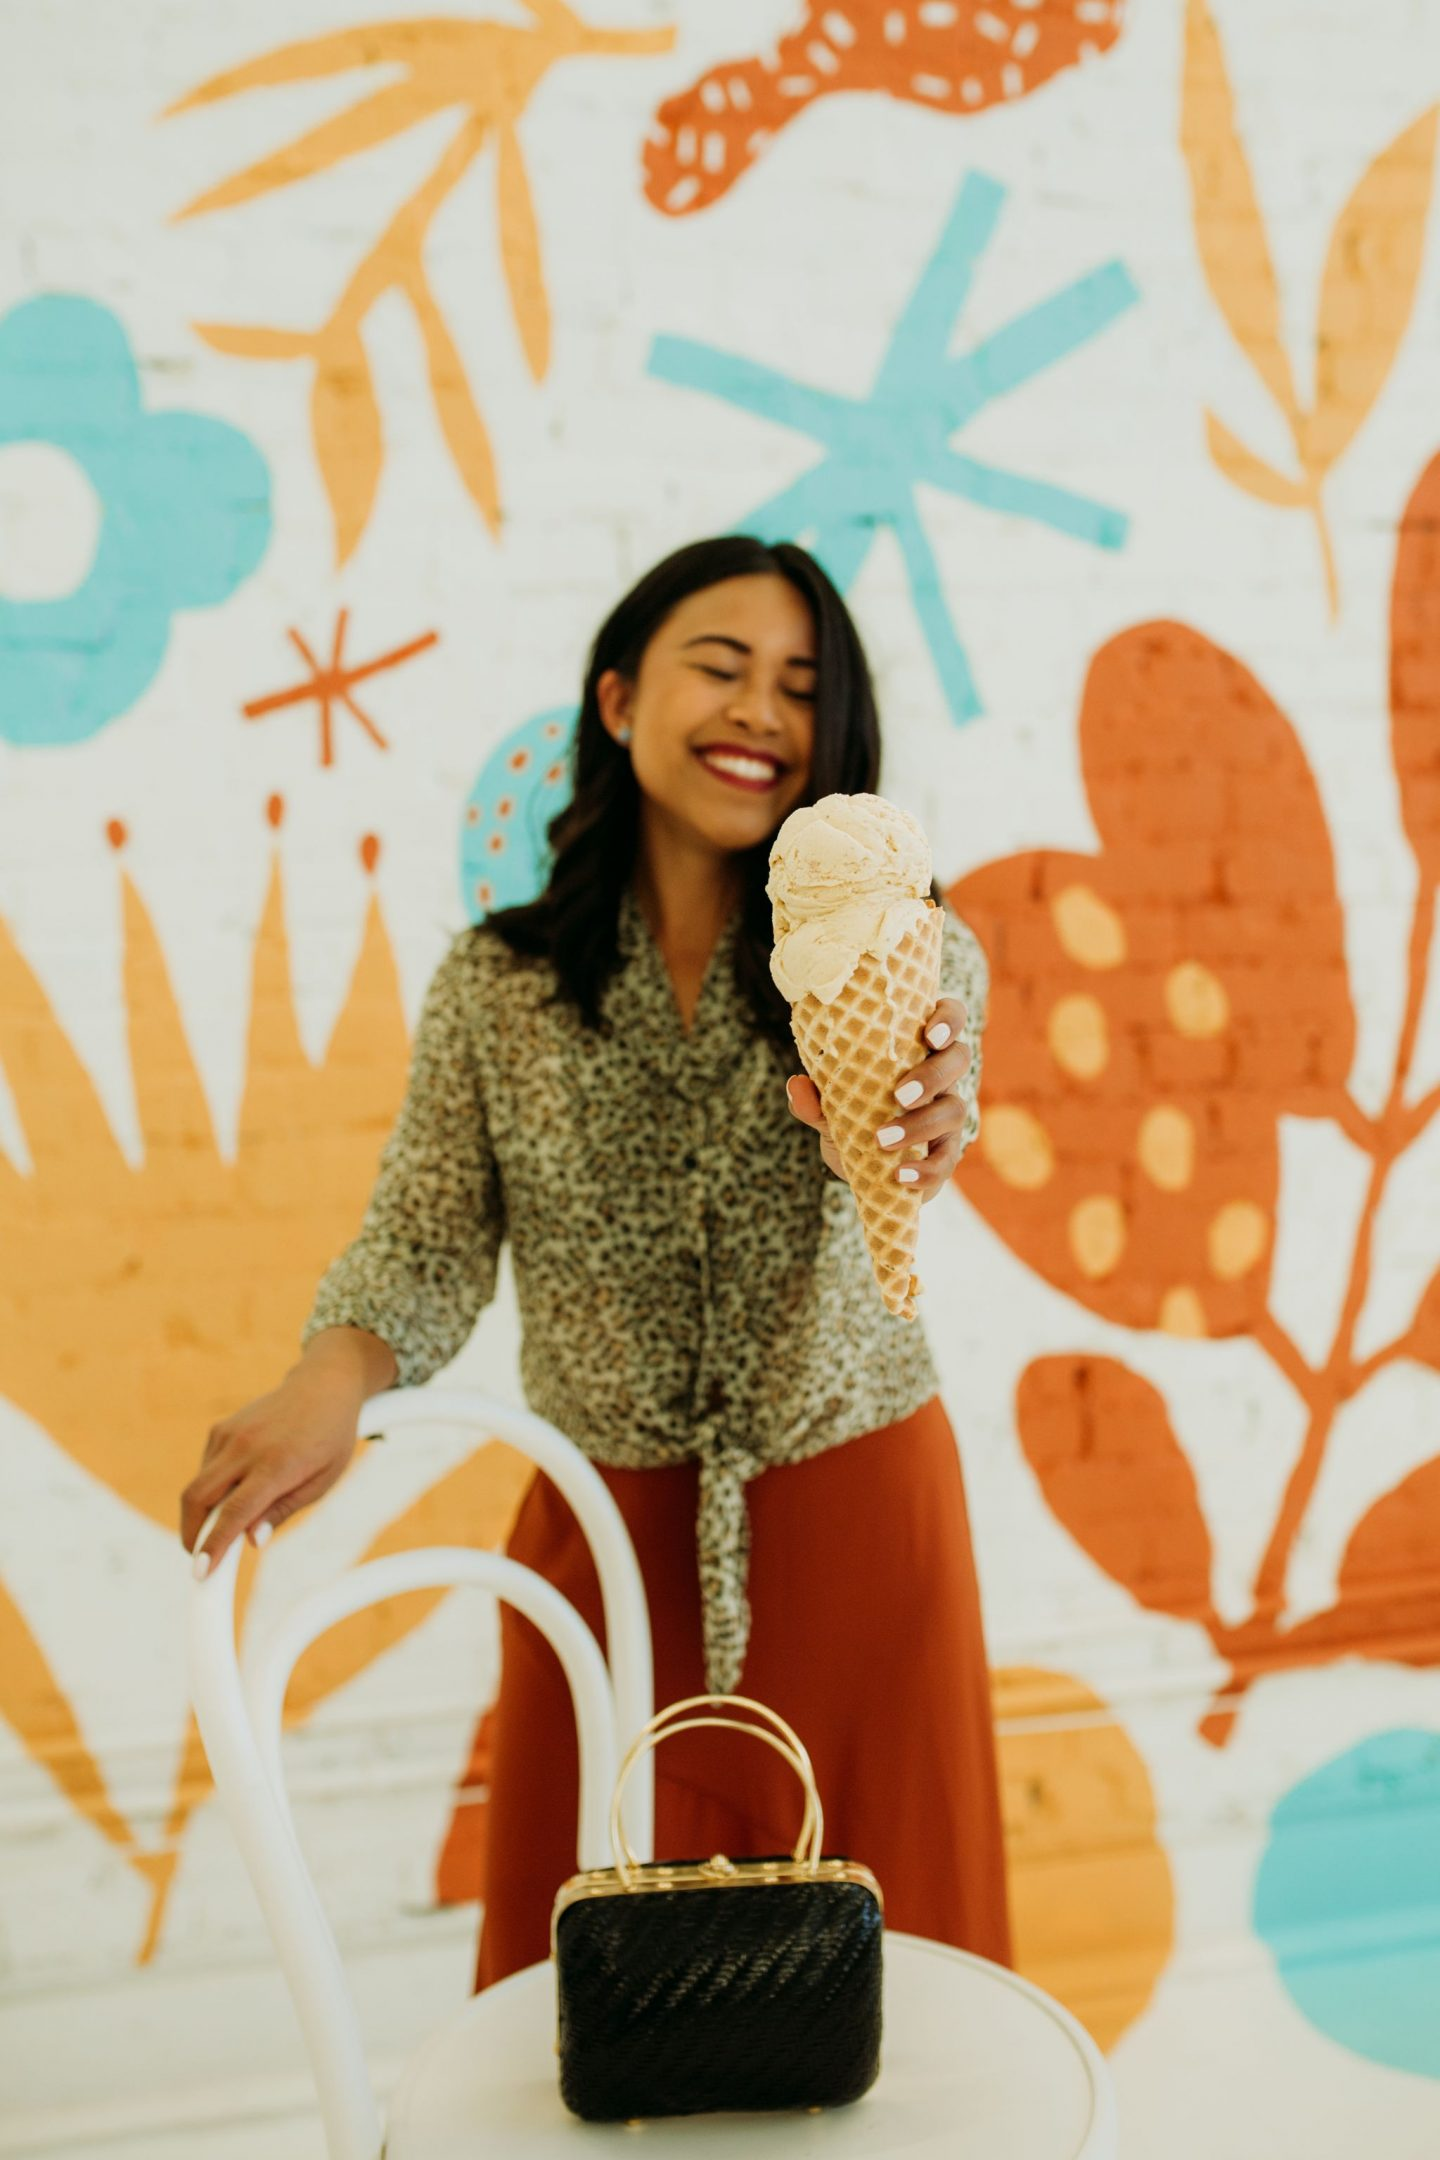 How to pose with food – ways to pose with food on Instagram – cute poses for Instagram – photography posing ideas – Instagram pose ideas – trending poses – how to pose like a fashion blogger - Molly Moons Ice cream